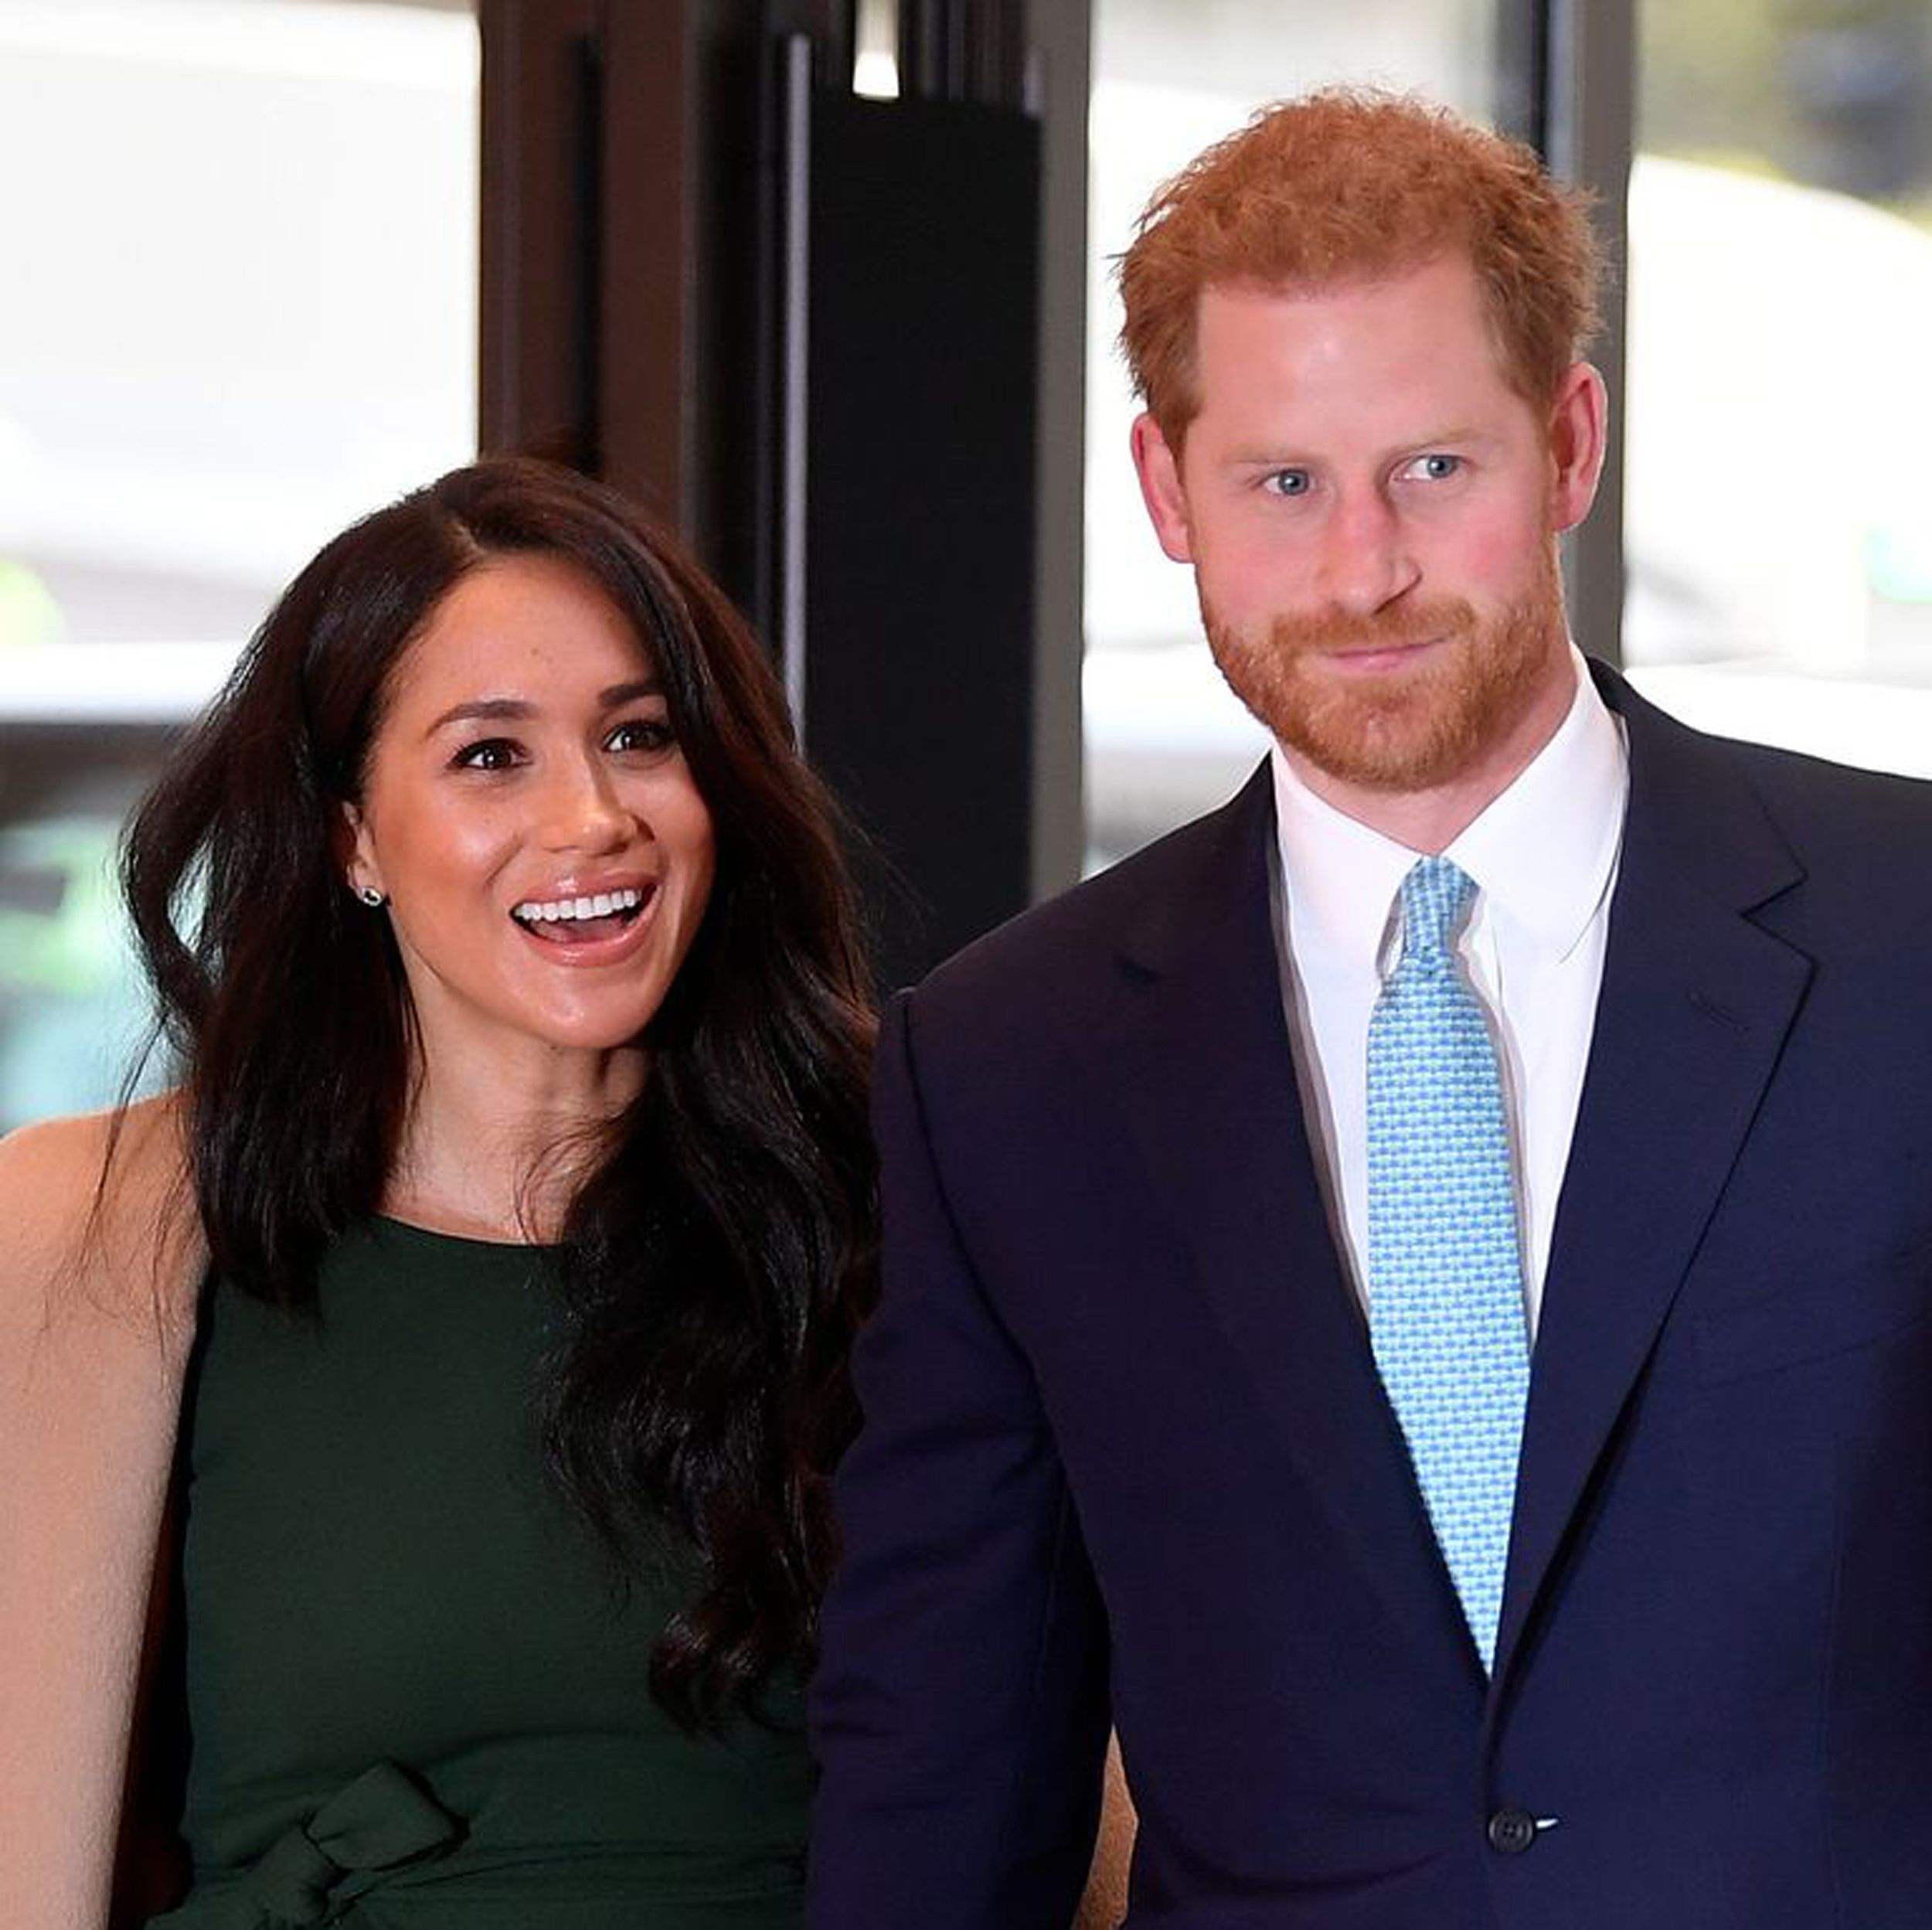 Prince Harry and Meghan Markle's Relocation Plans May Include a $7 Million Mansion in Malibu